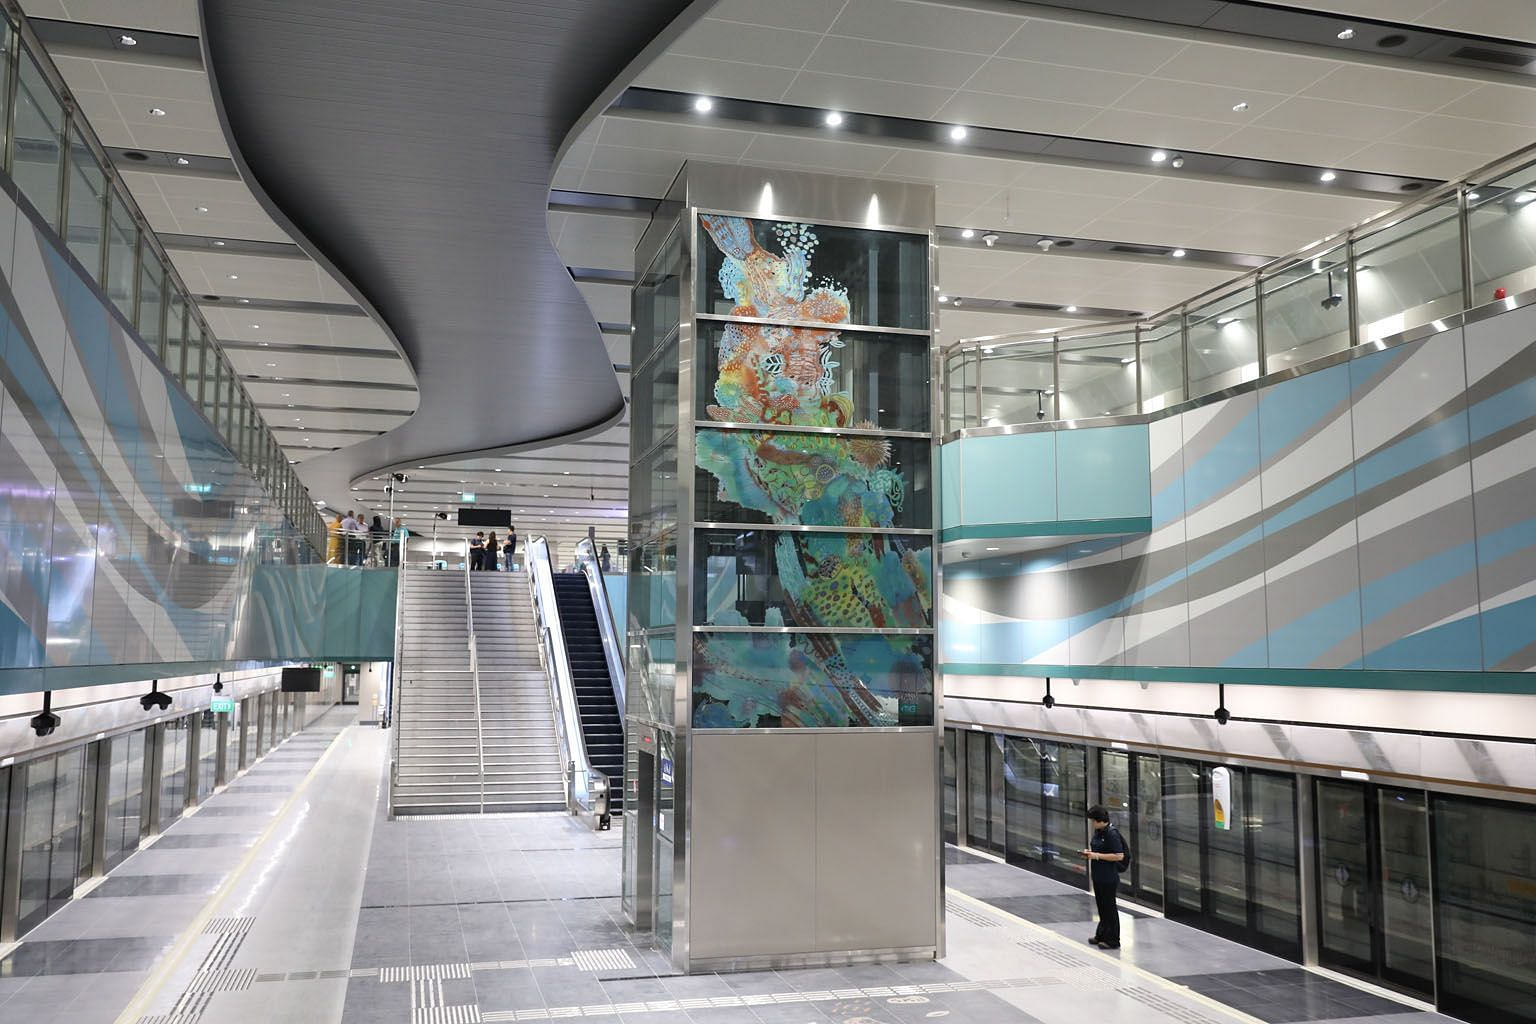 Thomson-East Coast Line Bright Hill MRT Station. The budget for new rail projects includes money to complete the Thomson-East Coast Line, Jurong Region Line, Phase 1 of the Cross Island Line, as well as advanced engineering studies for the western le